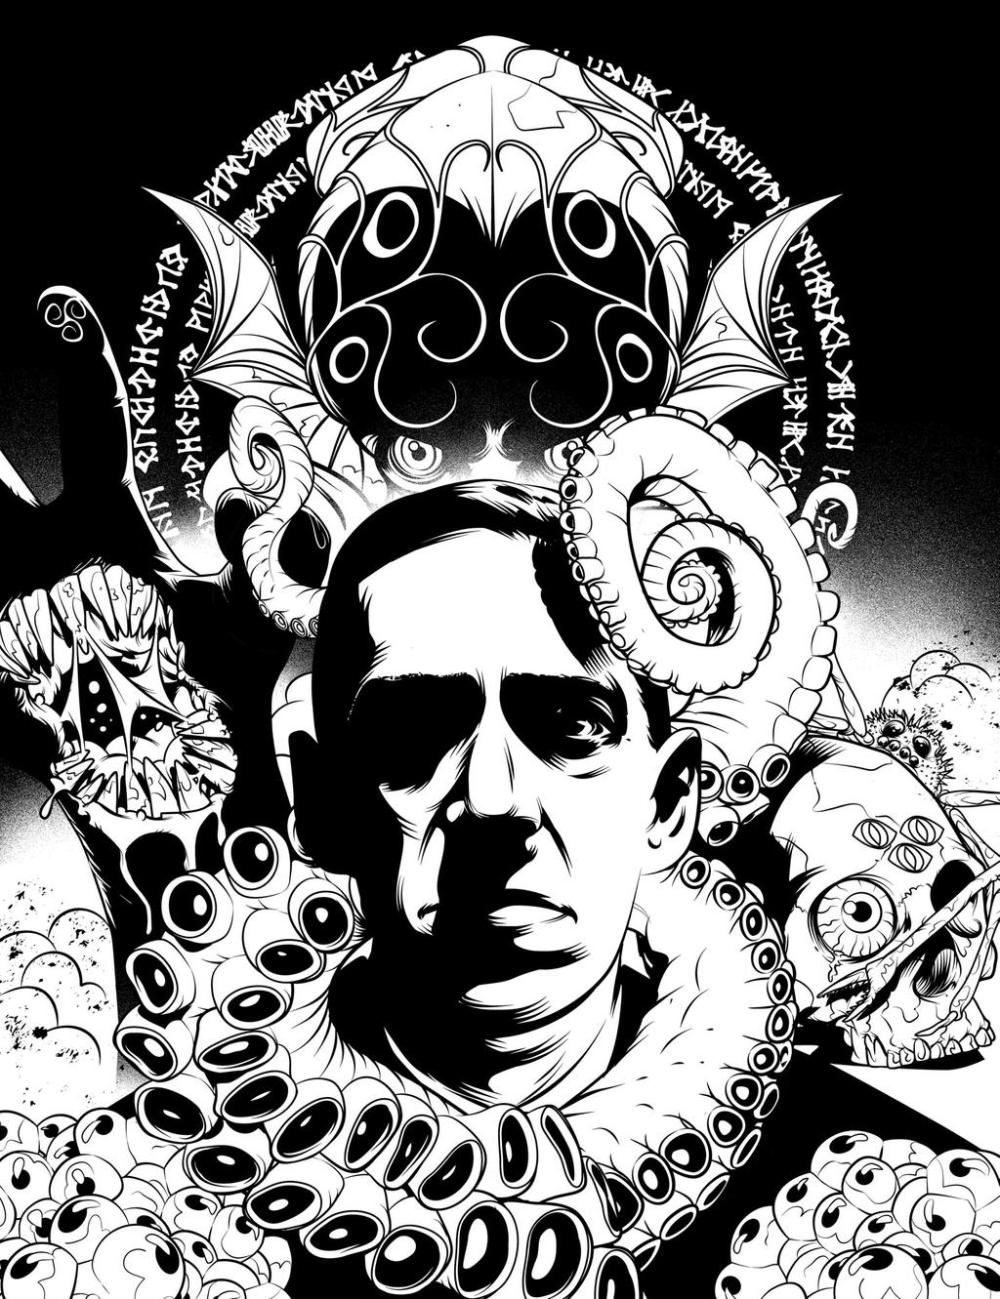 h__p__lovecraft_colouring_and_activity_book_by_handtoeye_db5njd1-fullview